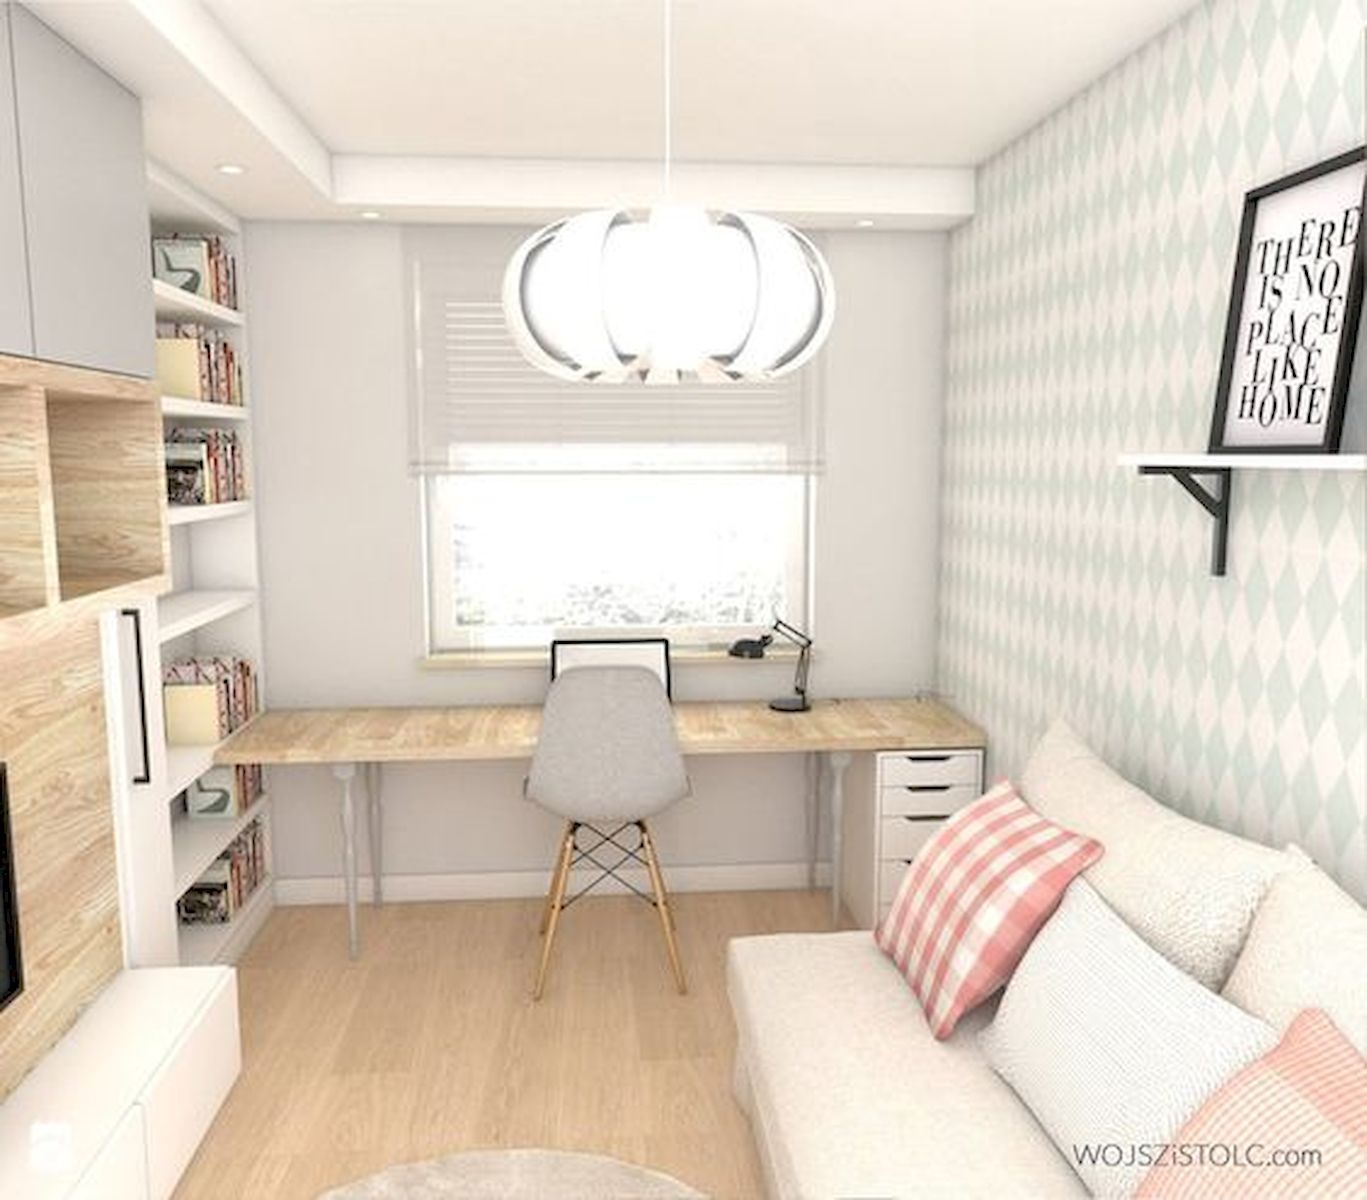 55 Best Home Decor Ideas: 55 Brilliant Workspace Desk Design Ideas On A Budget